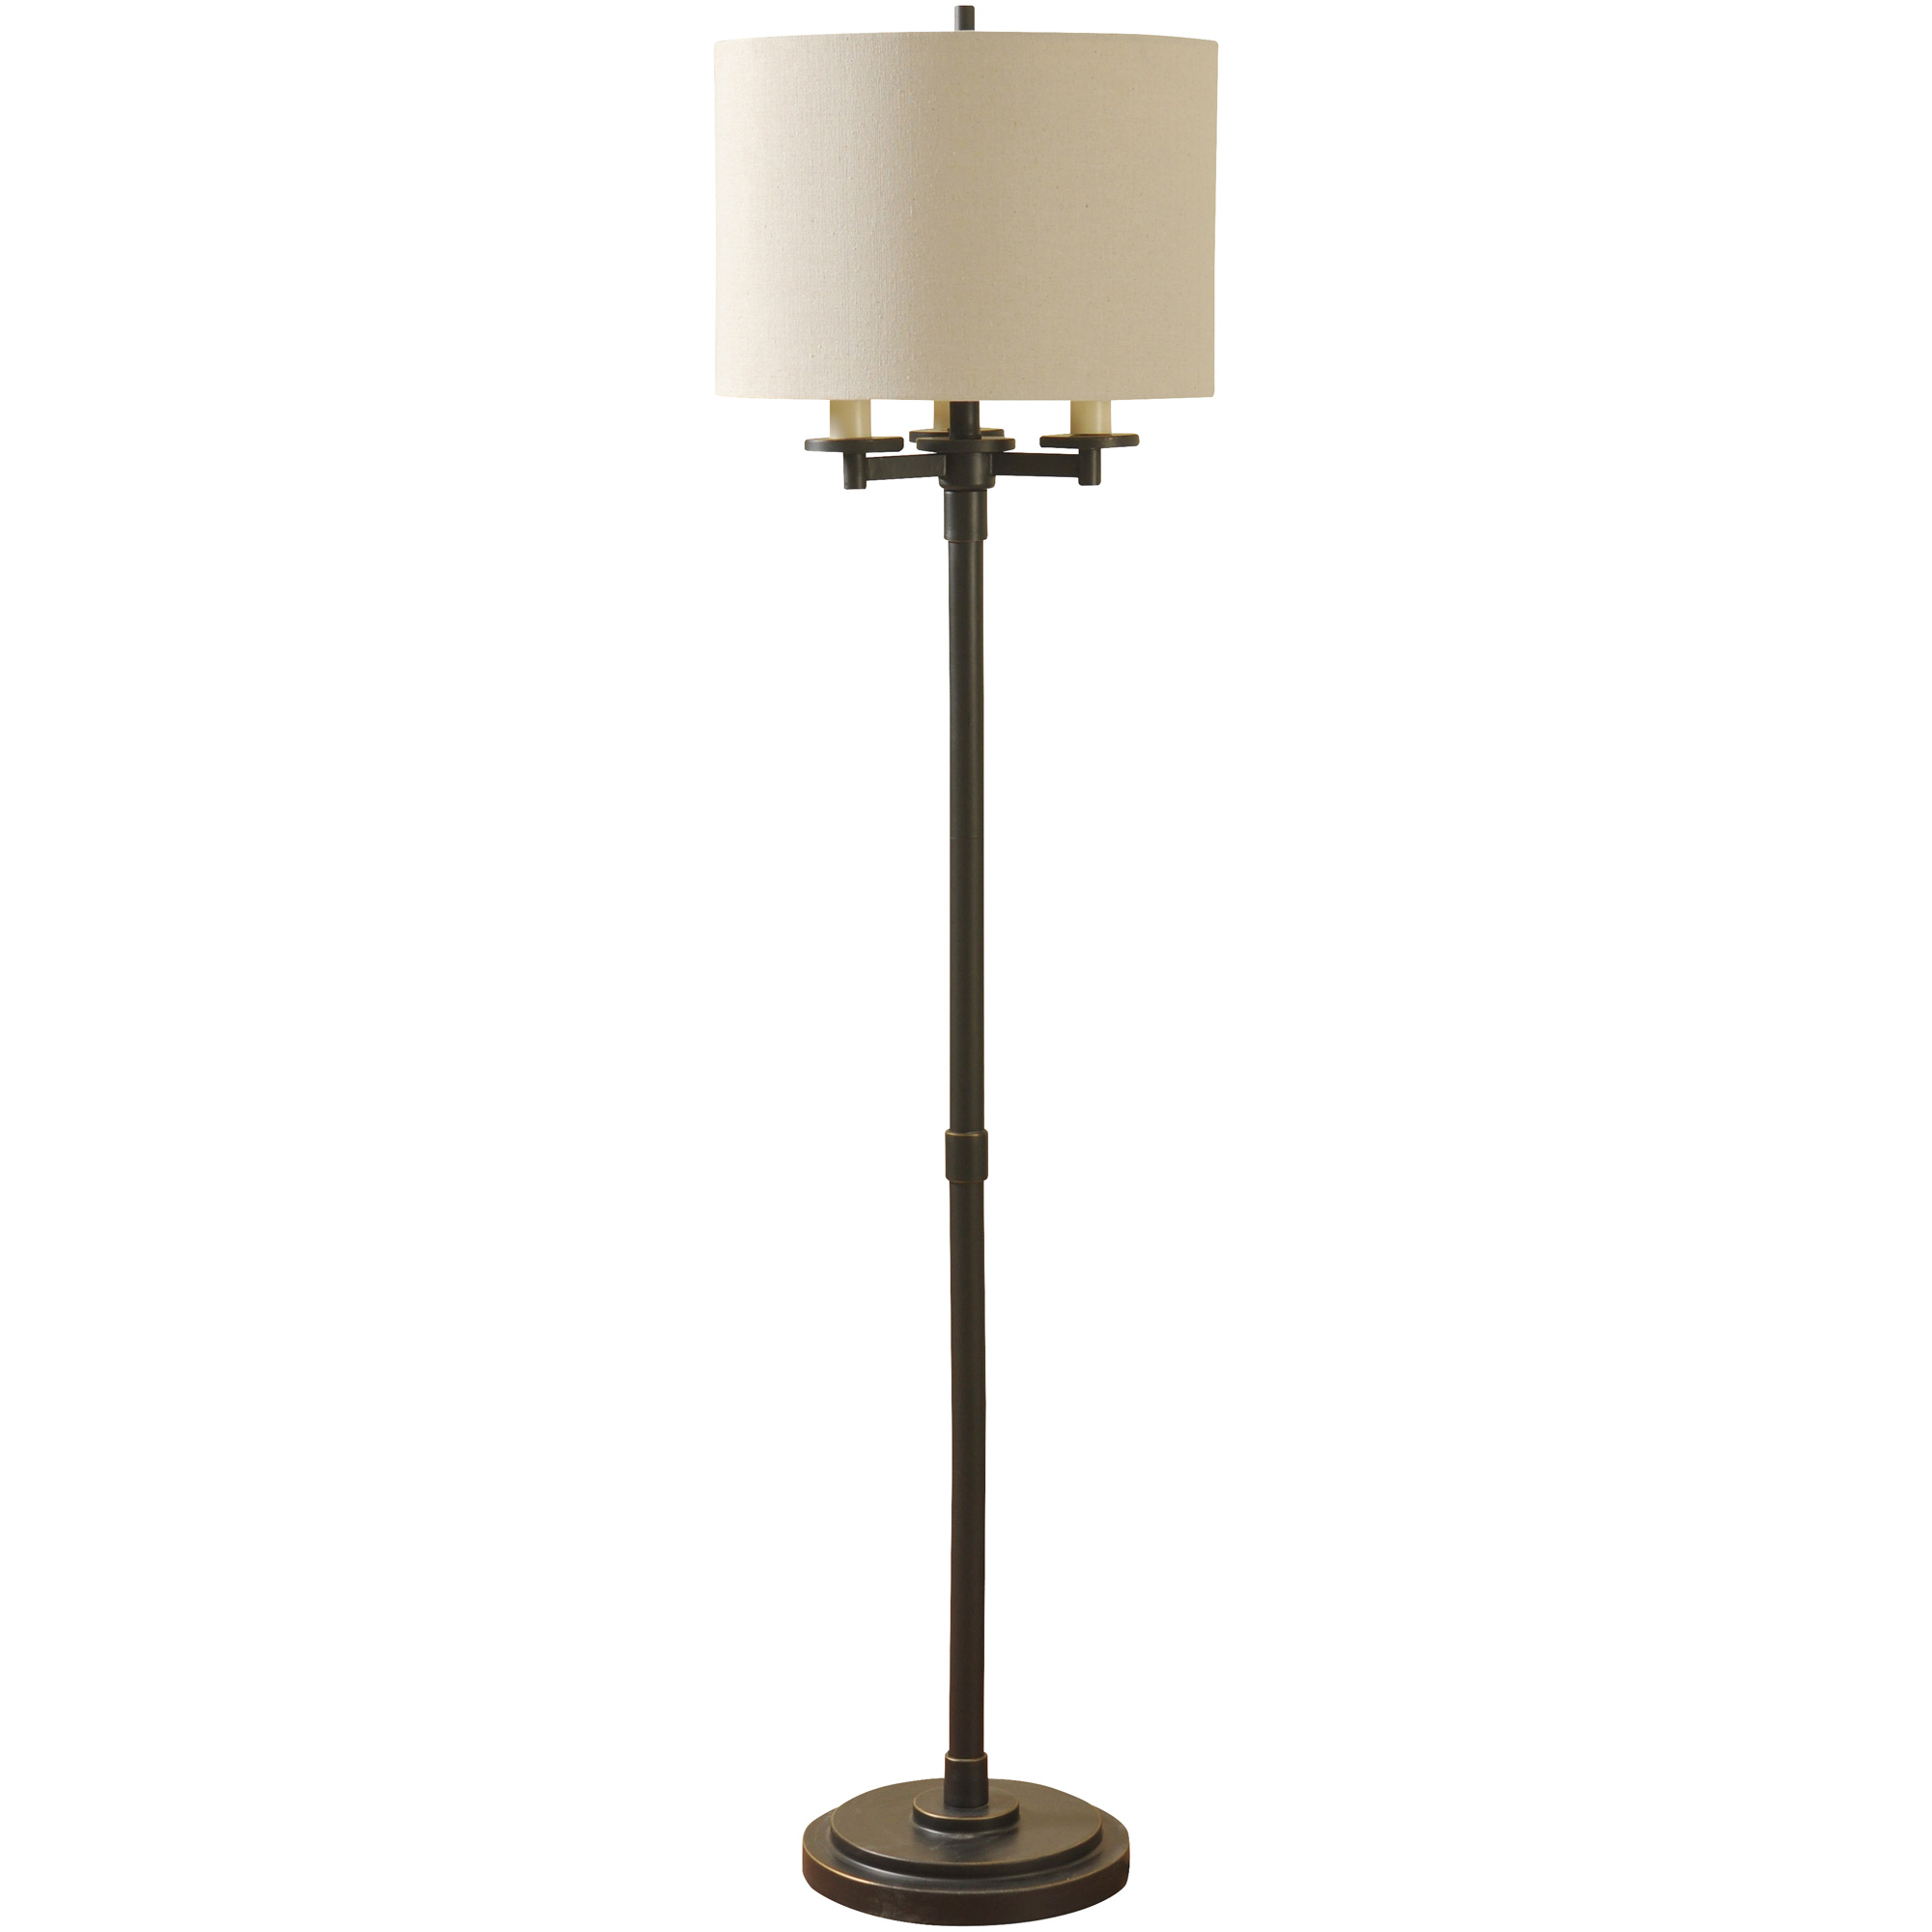 Stylecraft Home Collection | Atwater Bronze Floor Lamp